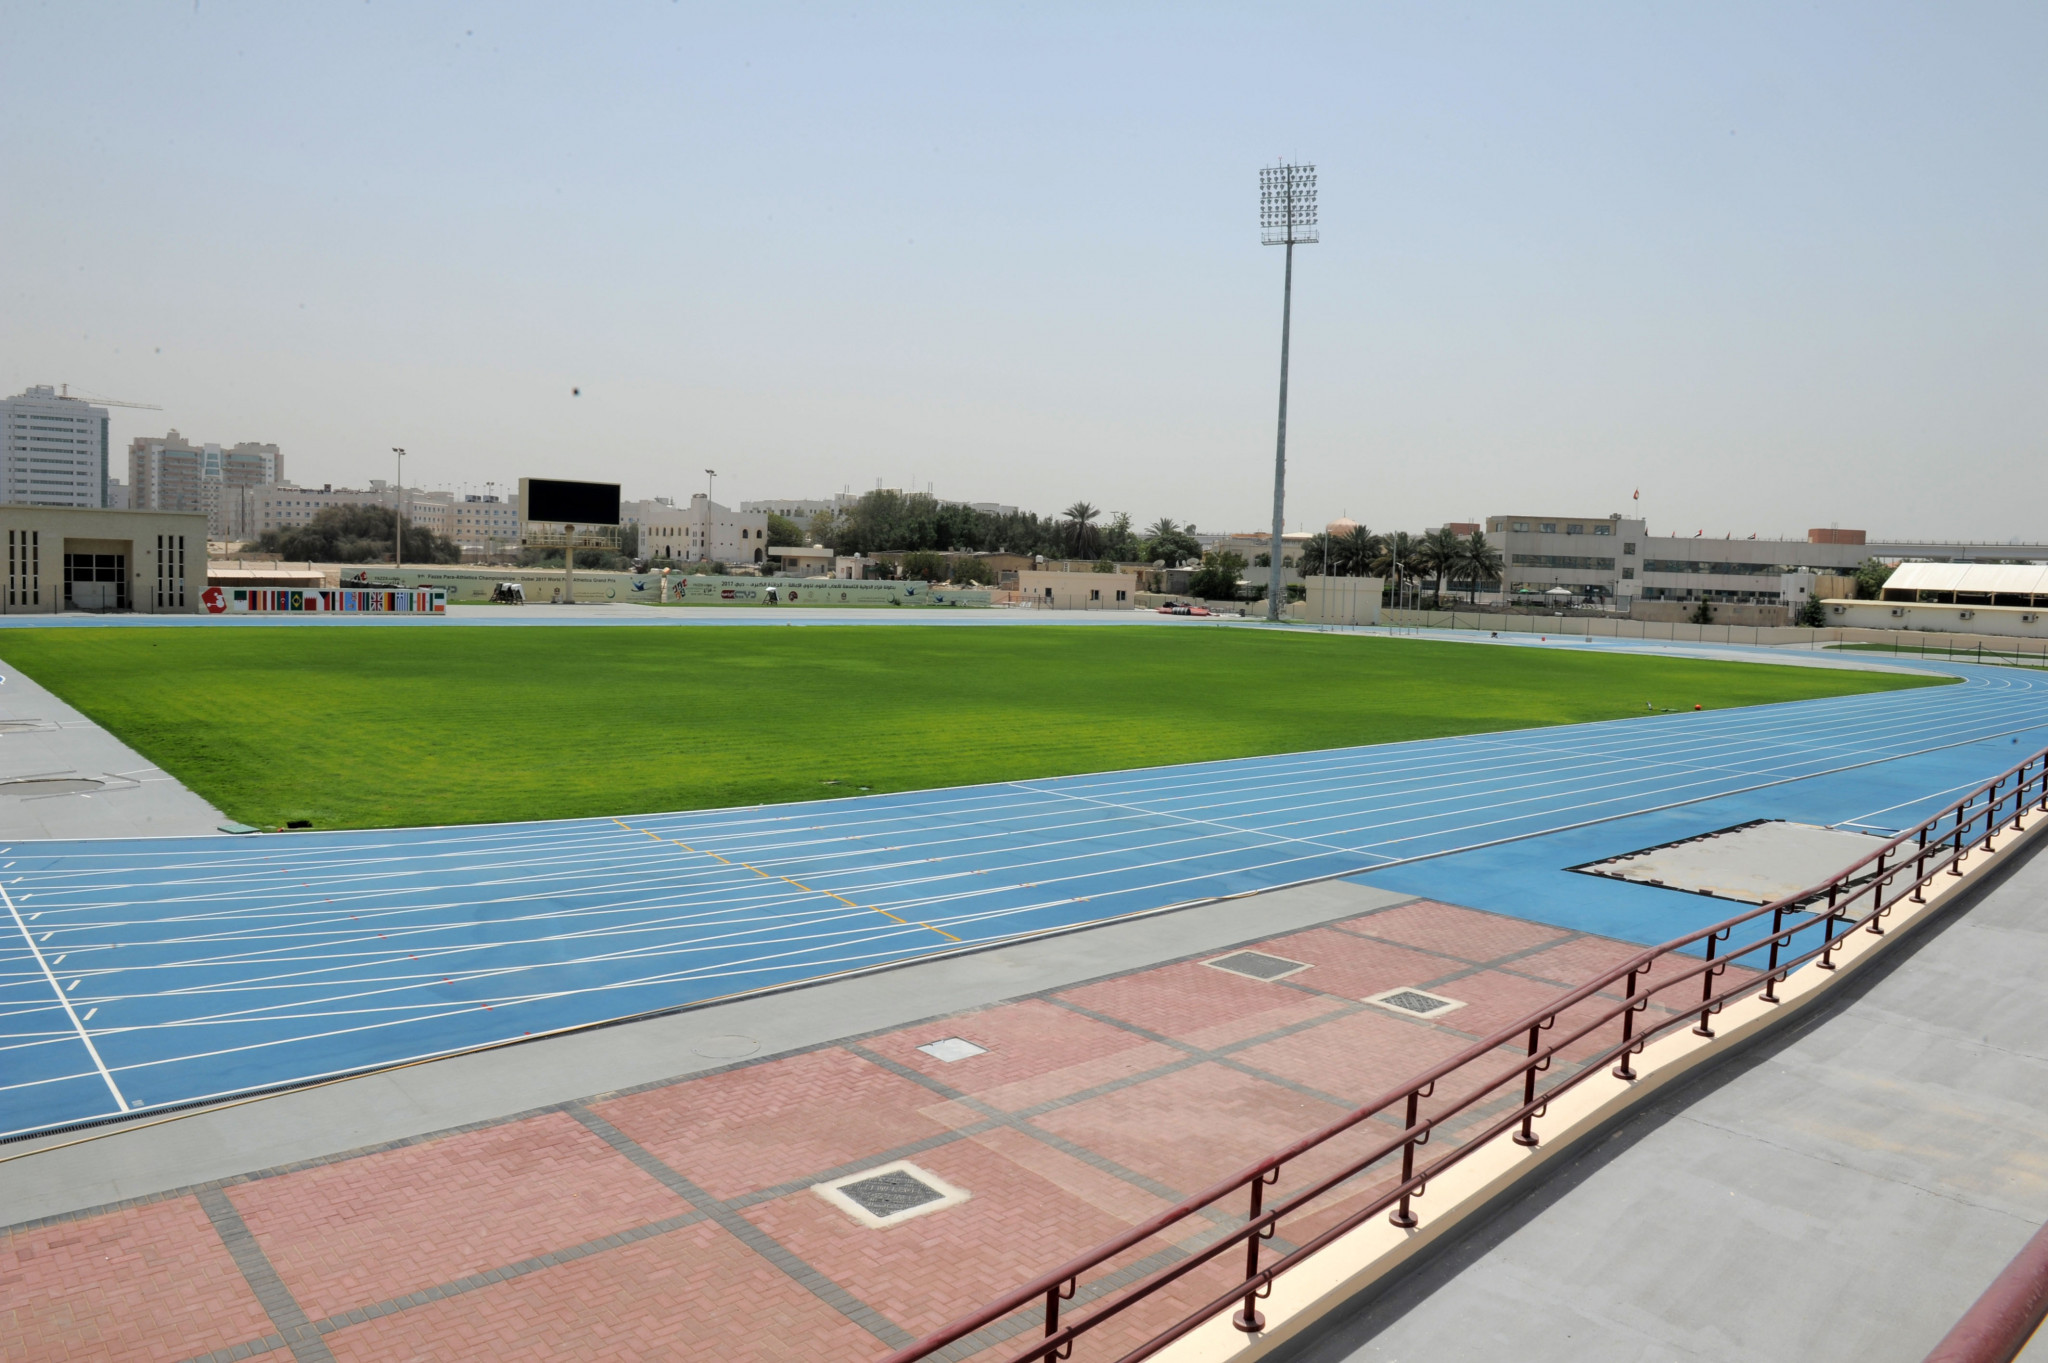 Dubai will host the 2019 Wold Para Athletics Championships a month after Doha hosts the able bodied version ©Dubai Club for People of Determination